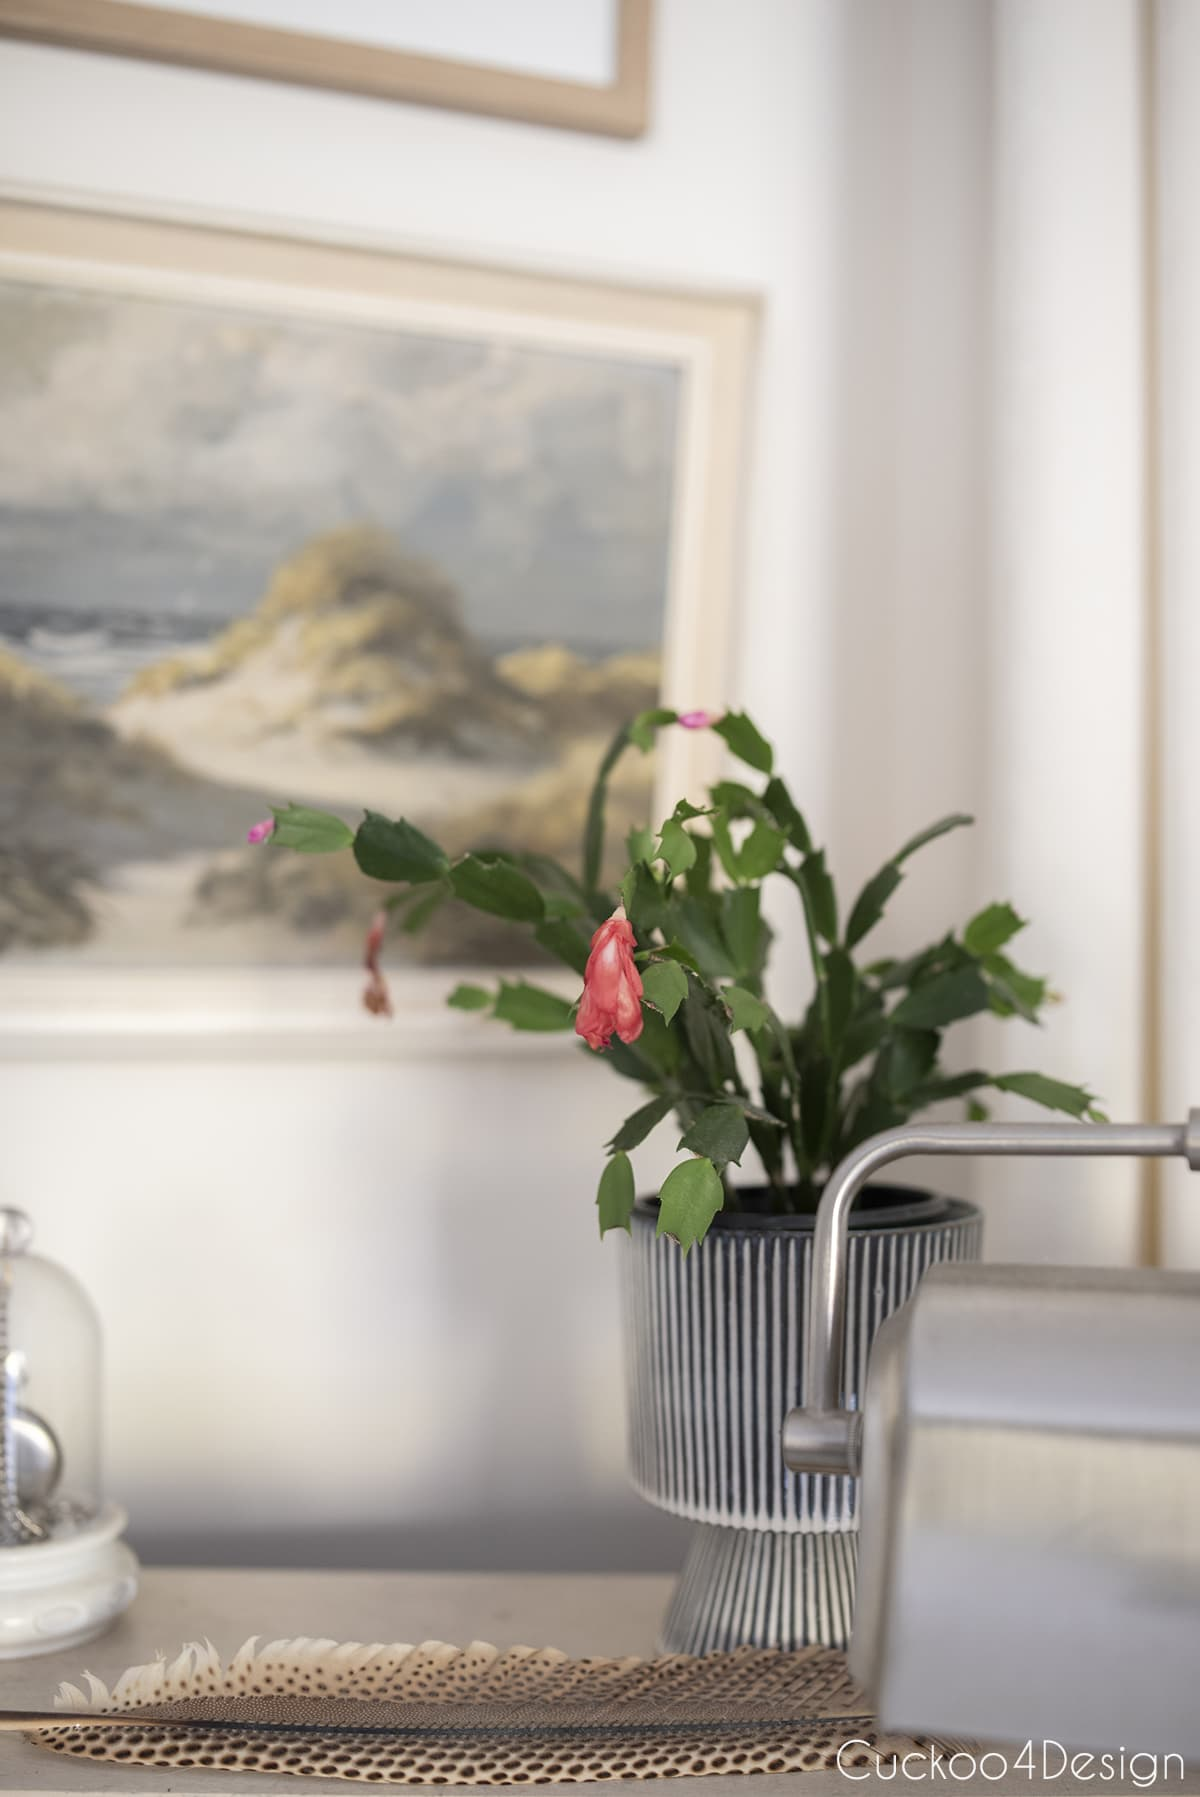 Christmas cactus in blue striped pot on desk